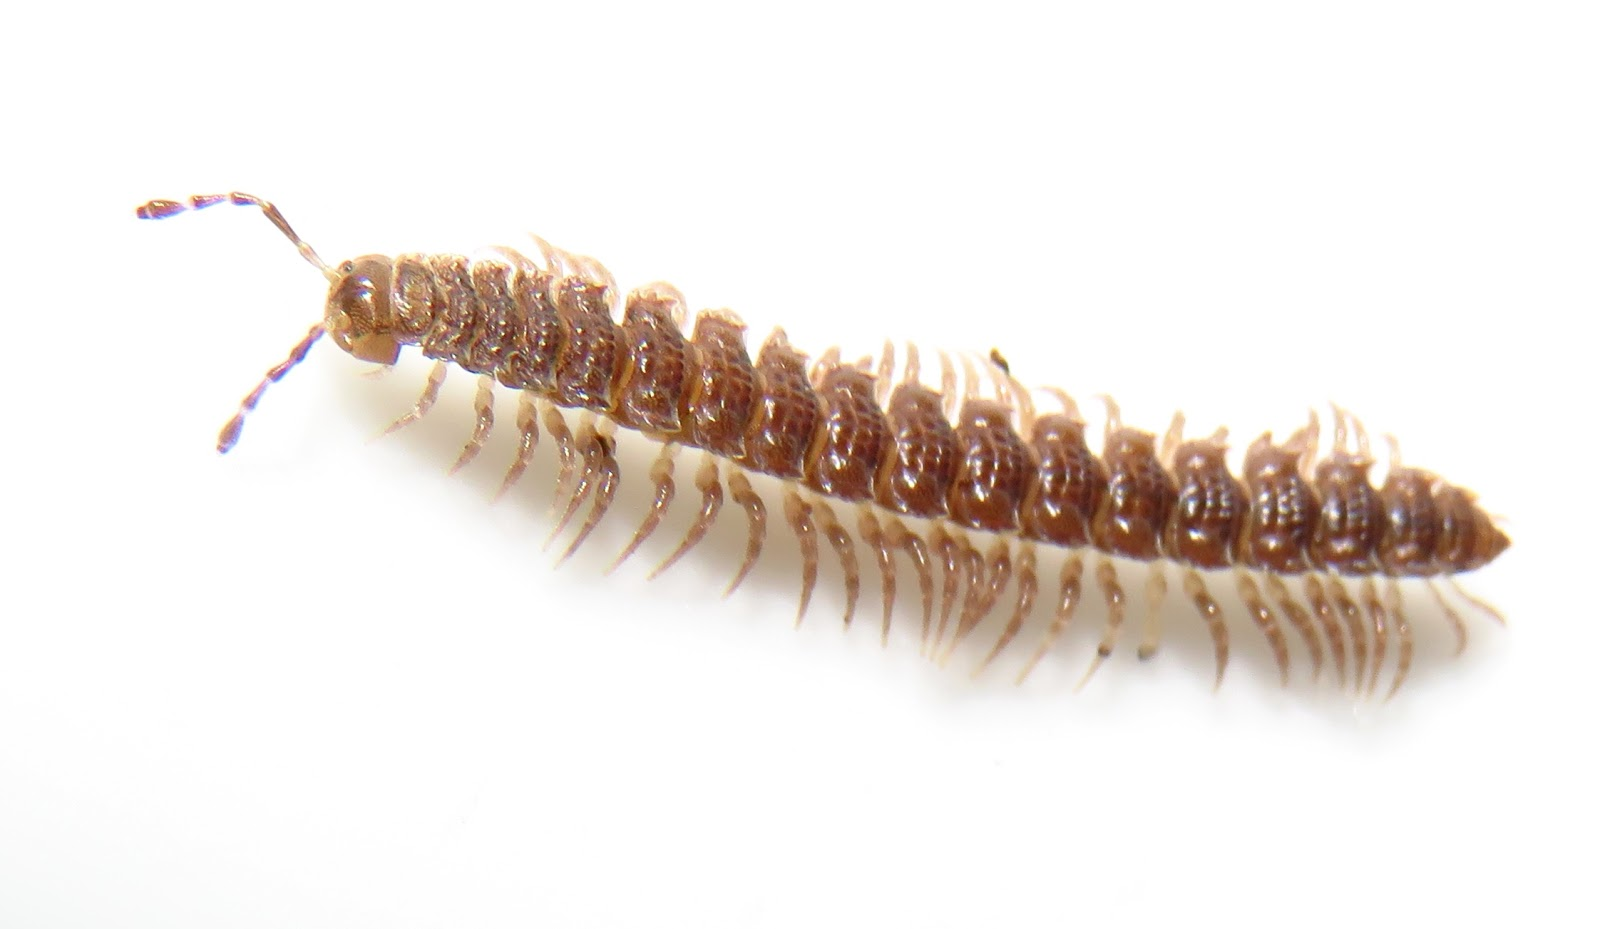 10 Fascinating Millipede facts and pictures